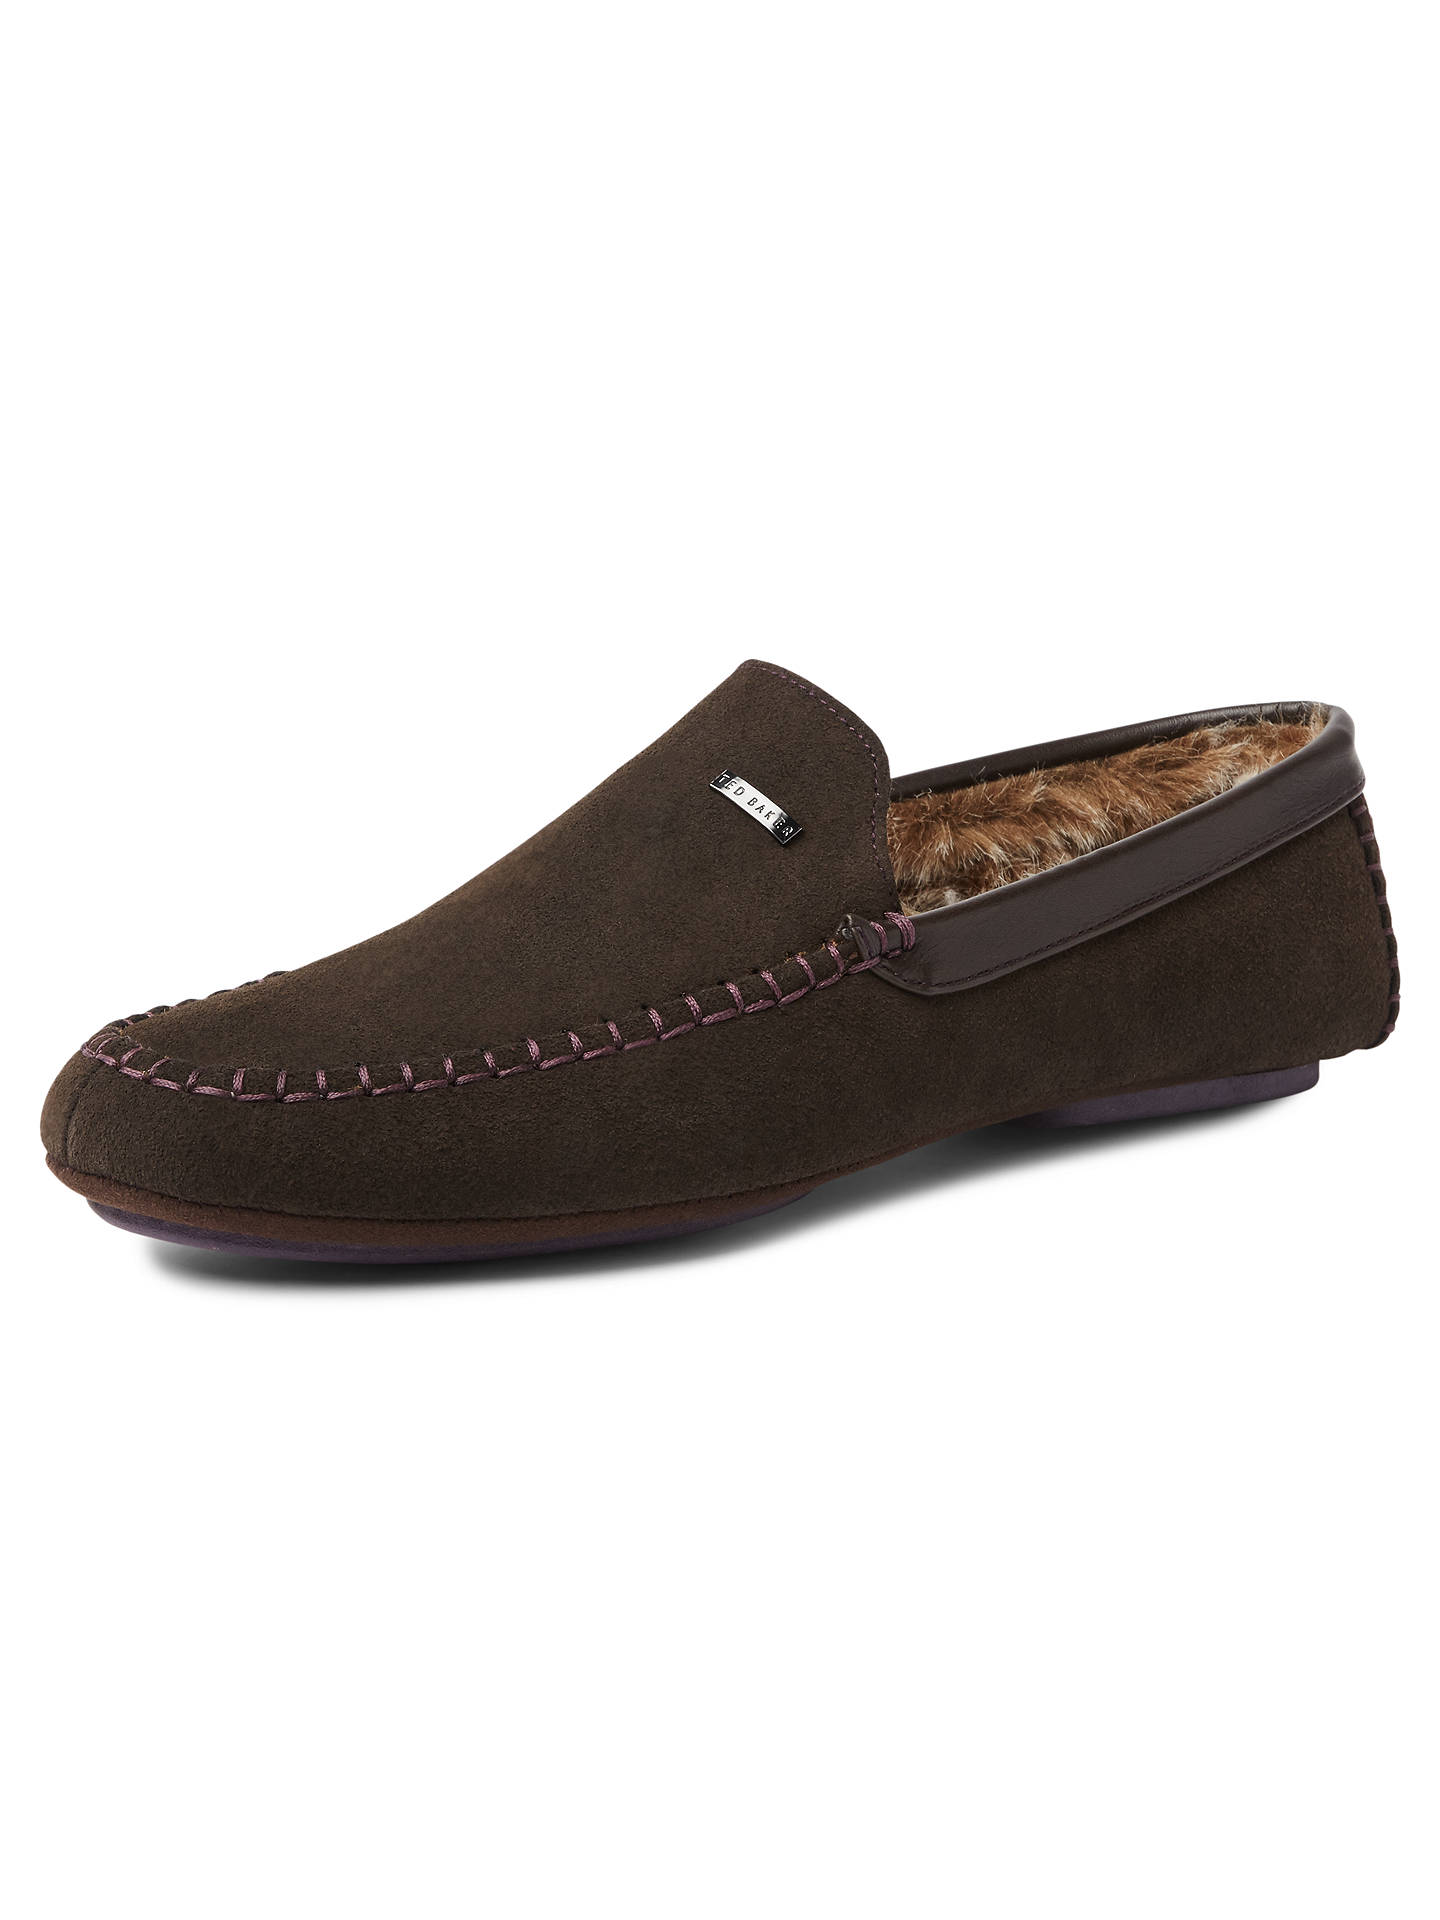 f8ba02a6ba4 Ted Baker Morris Moccasin Suede Slippers at John Lewis   Partners